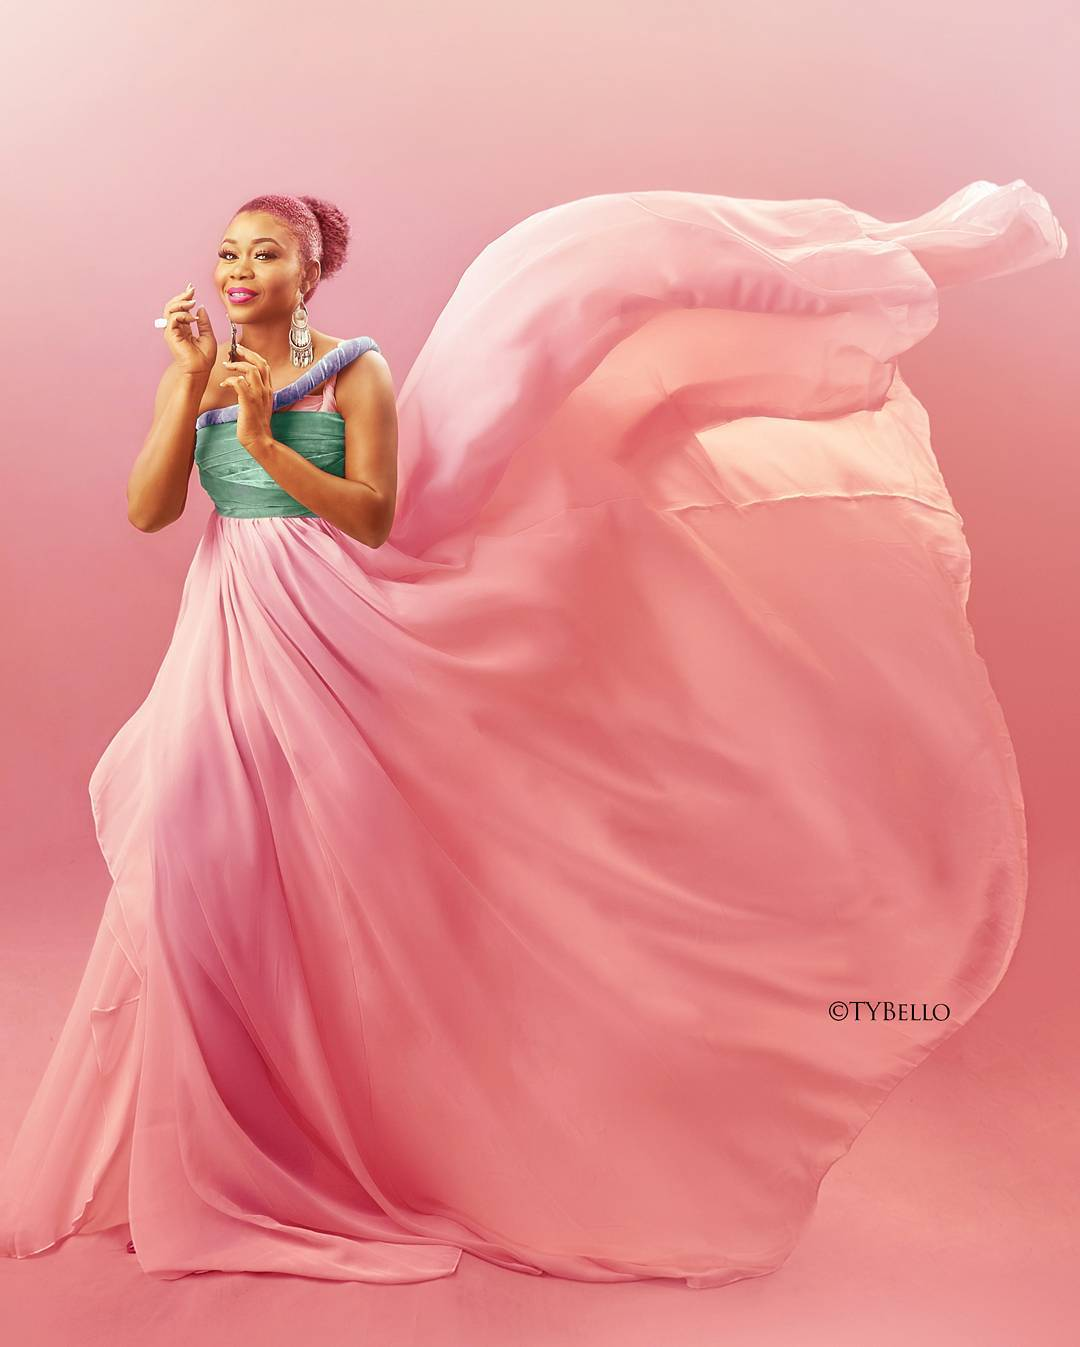 ty bello oluseyi itegbe - Fabulous 40th Birthday Portraits By TY Bello